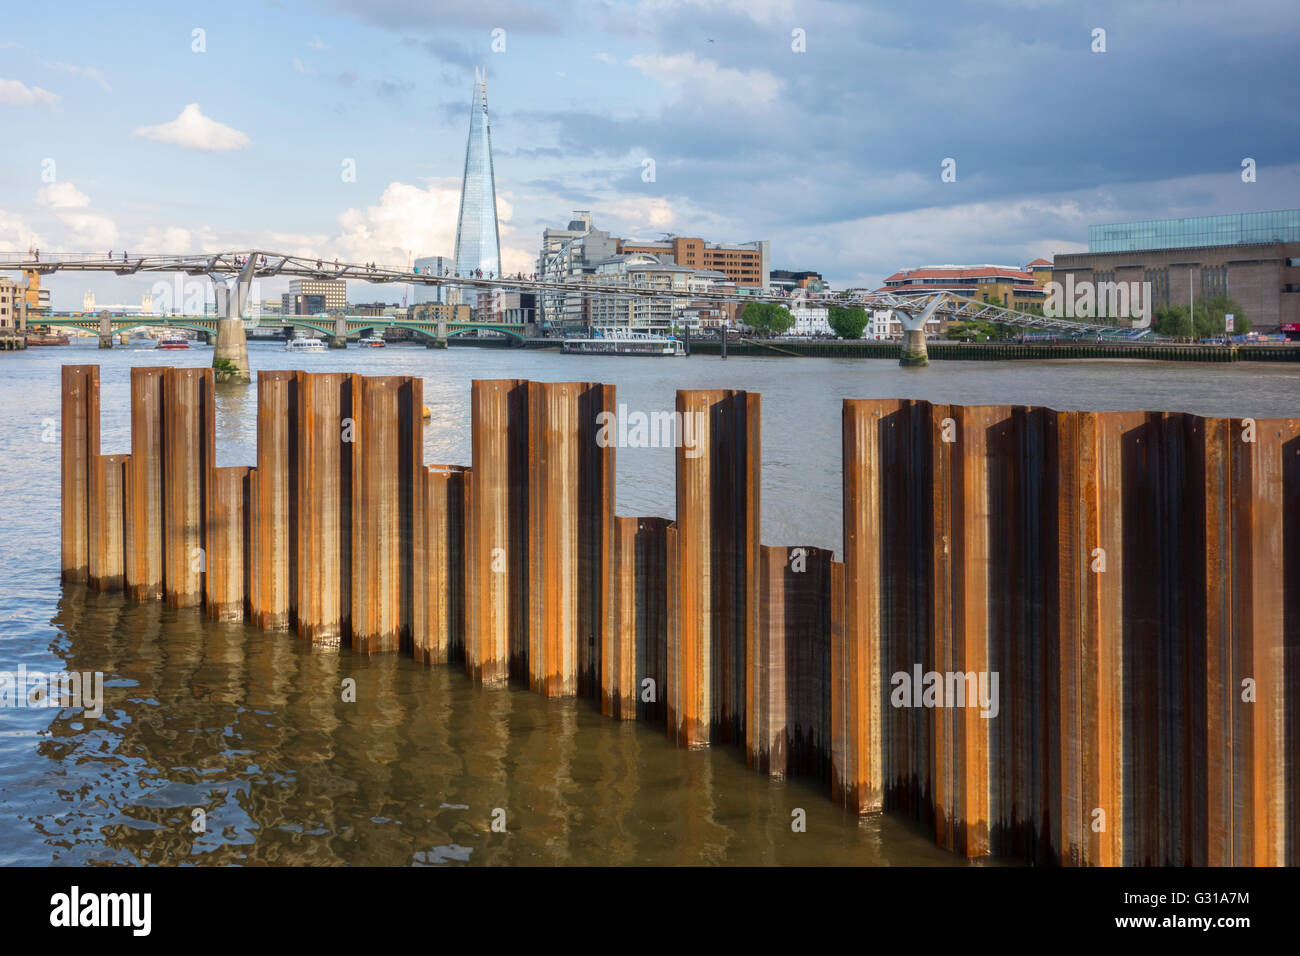 Steel retainers in the river Thames for the new Blackfriars Pier, moved for the Thames Tideway Tunnel construction. - Stock Image